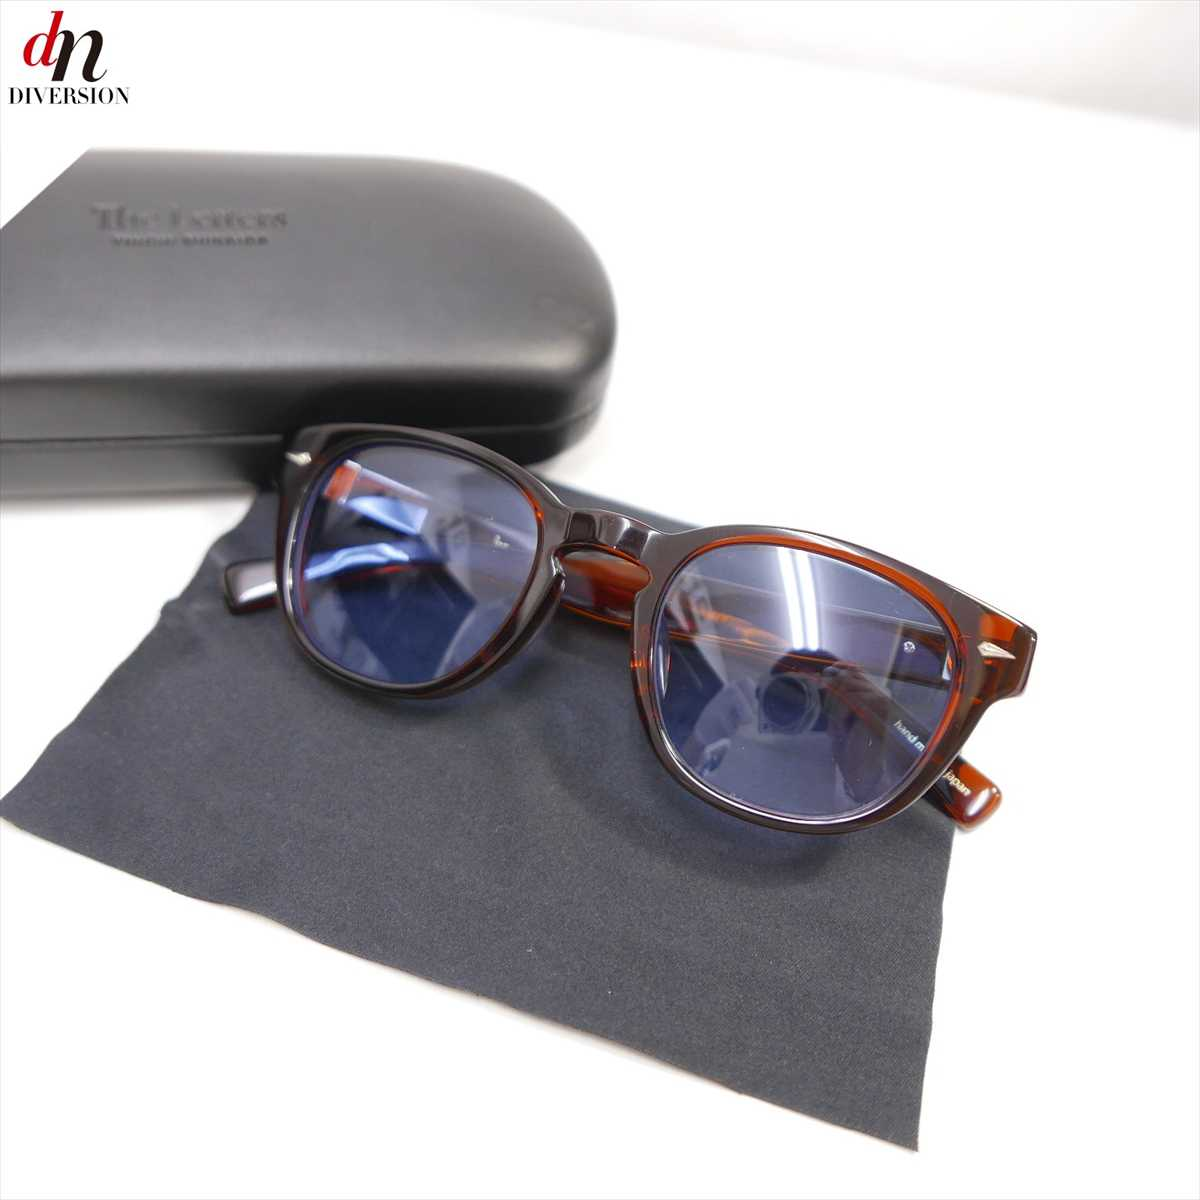 18SS The Letters kearny END ザ レターズ カーニー エンド Wellington Sunglasses. ウエリントン セルフレーム サングラス BROWN 【中古】 DNS-7301